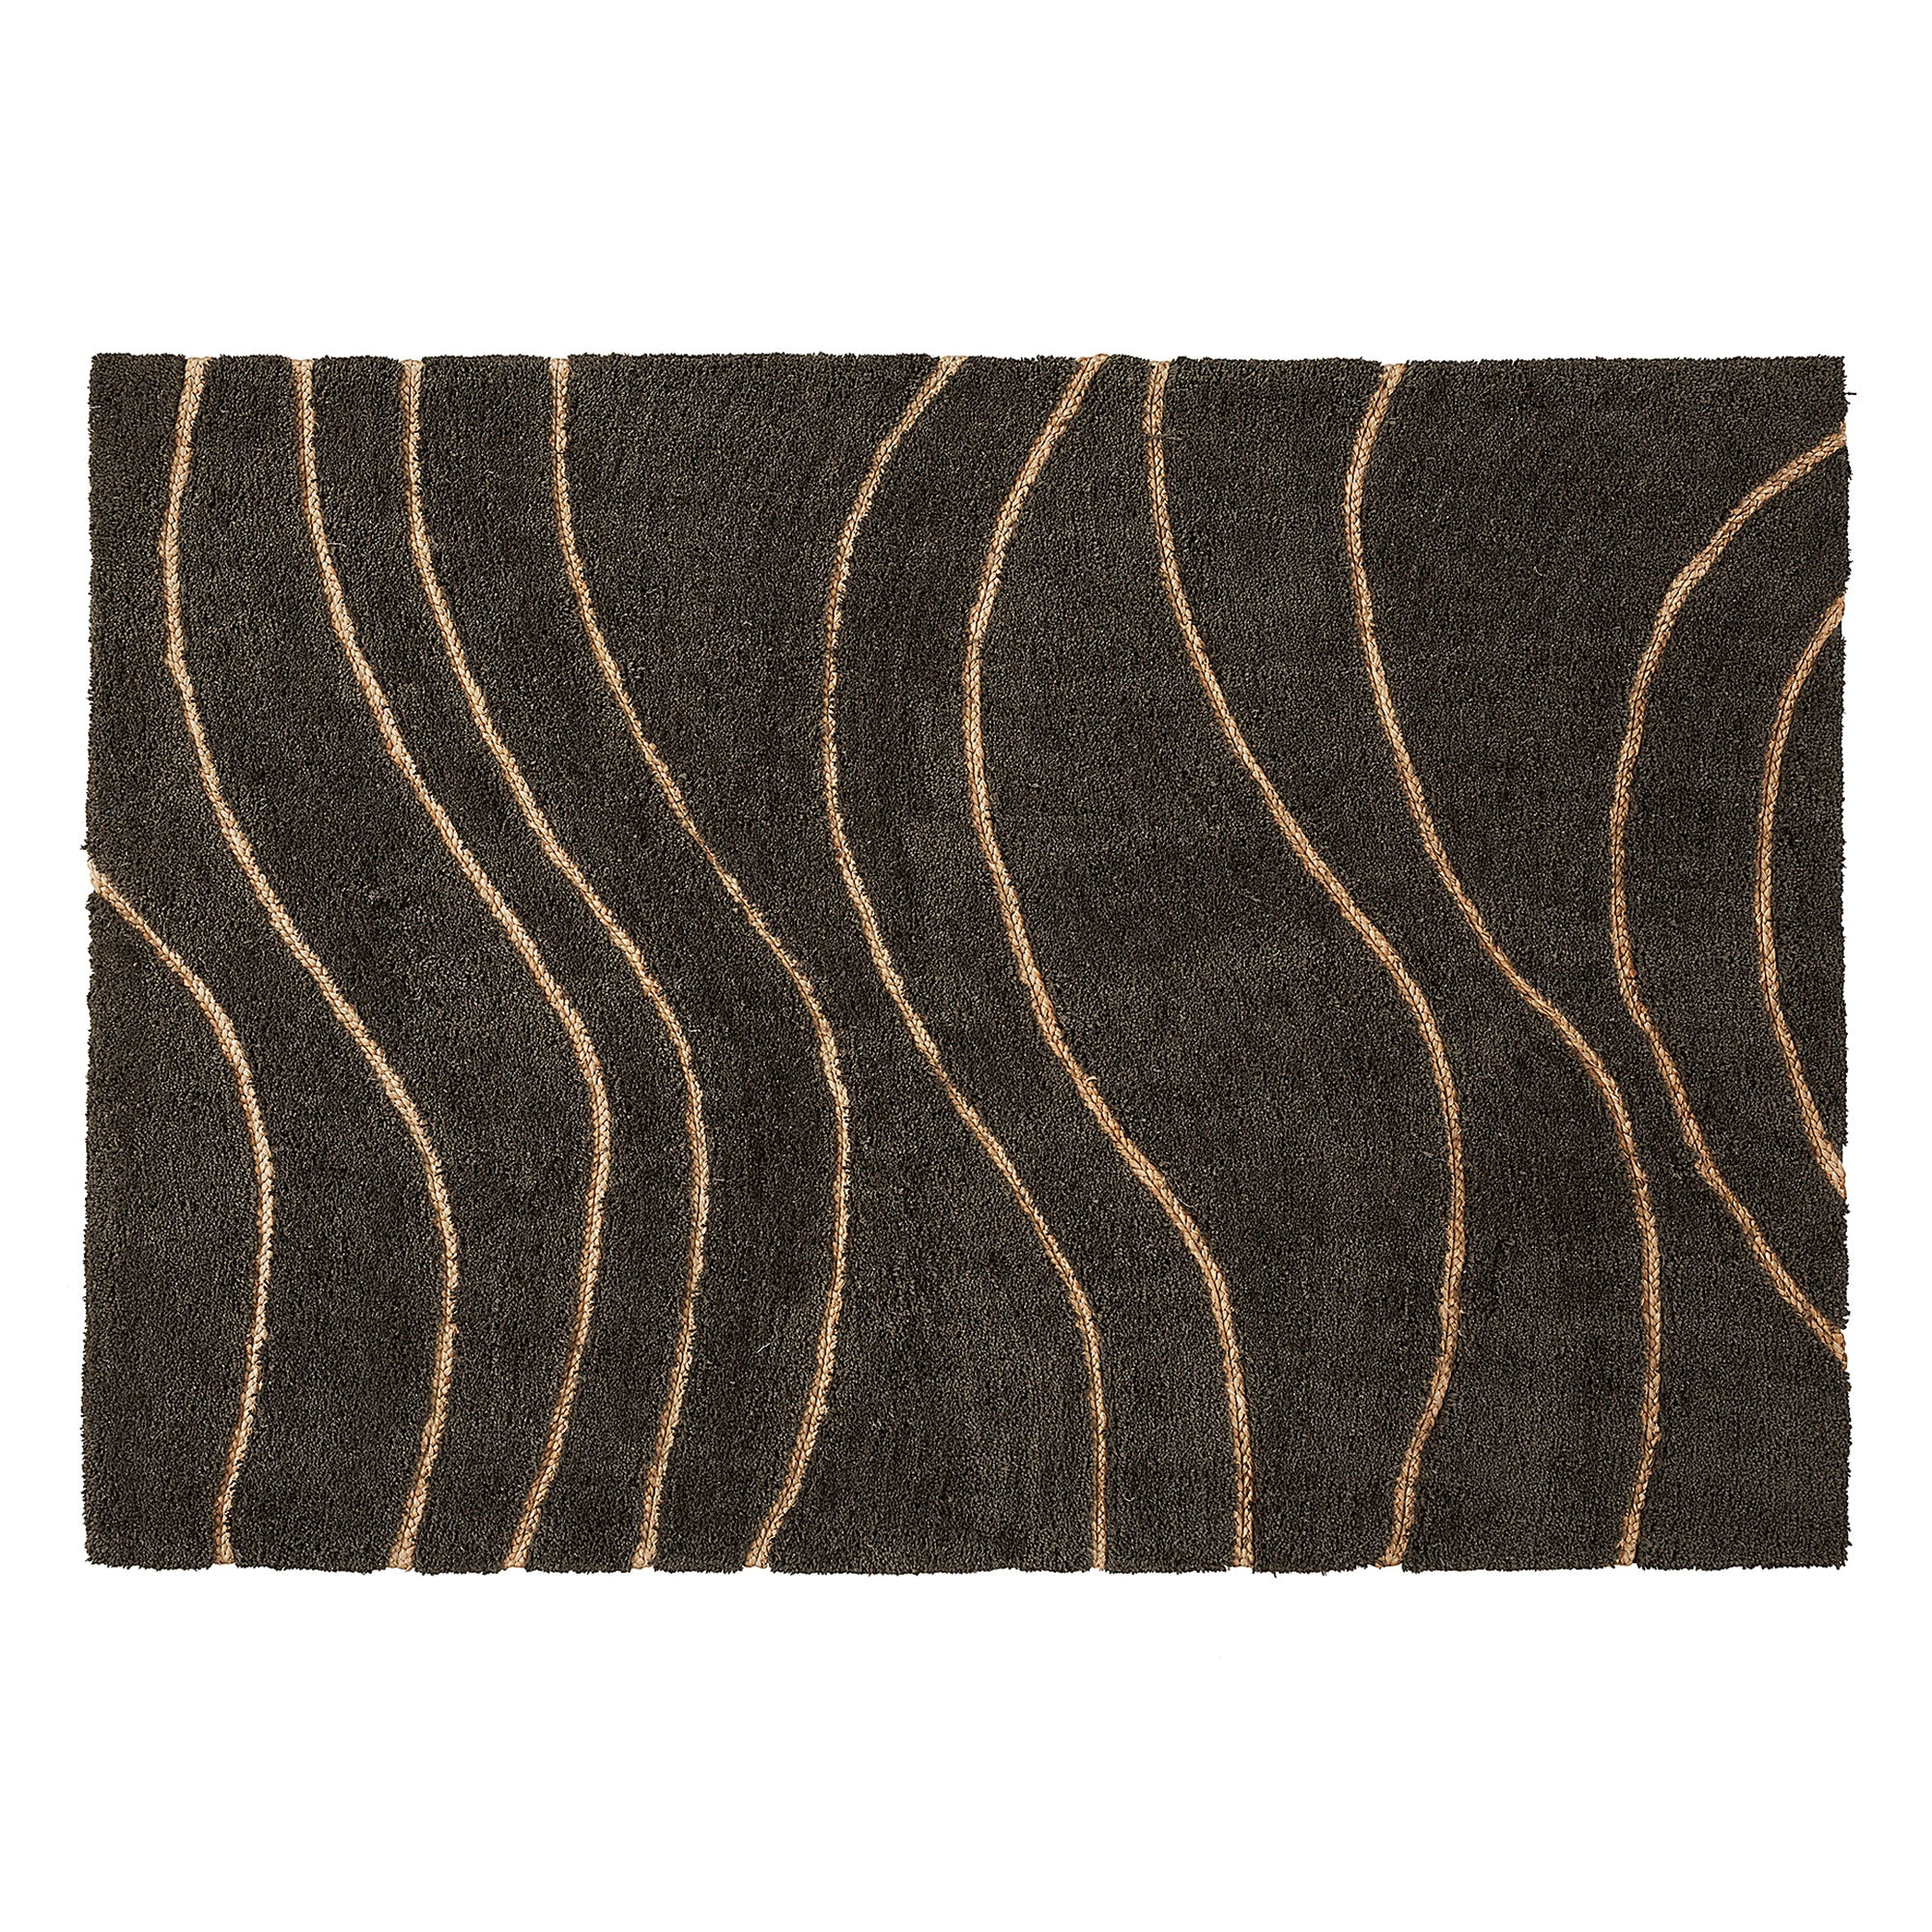 Matthias Rug - Made of Wool and Dark Grey Viscose with Curved Lines 160 x 230 cm, Rug - Home-Buy Interiors